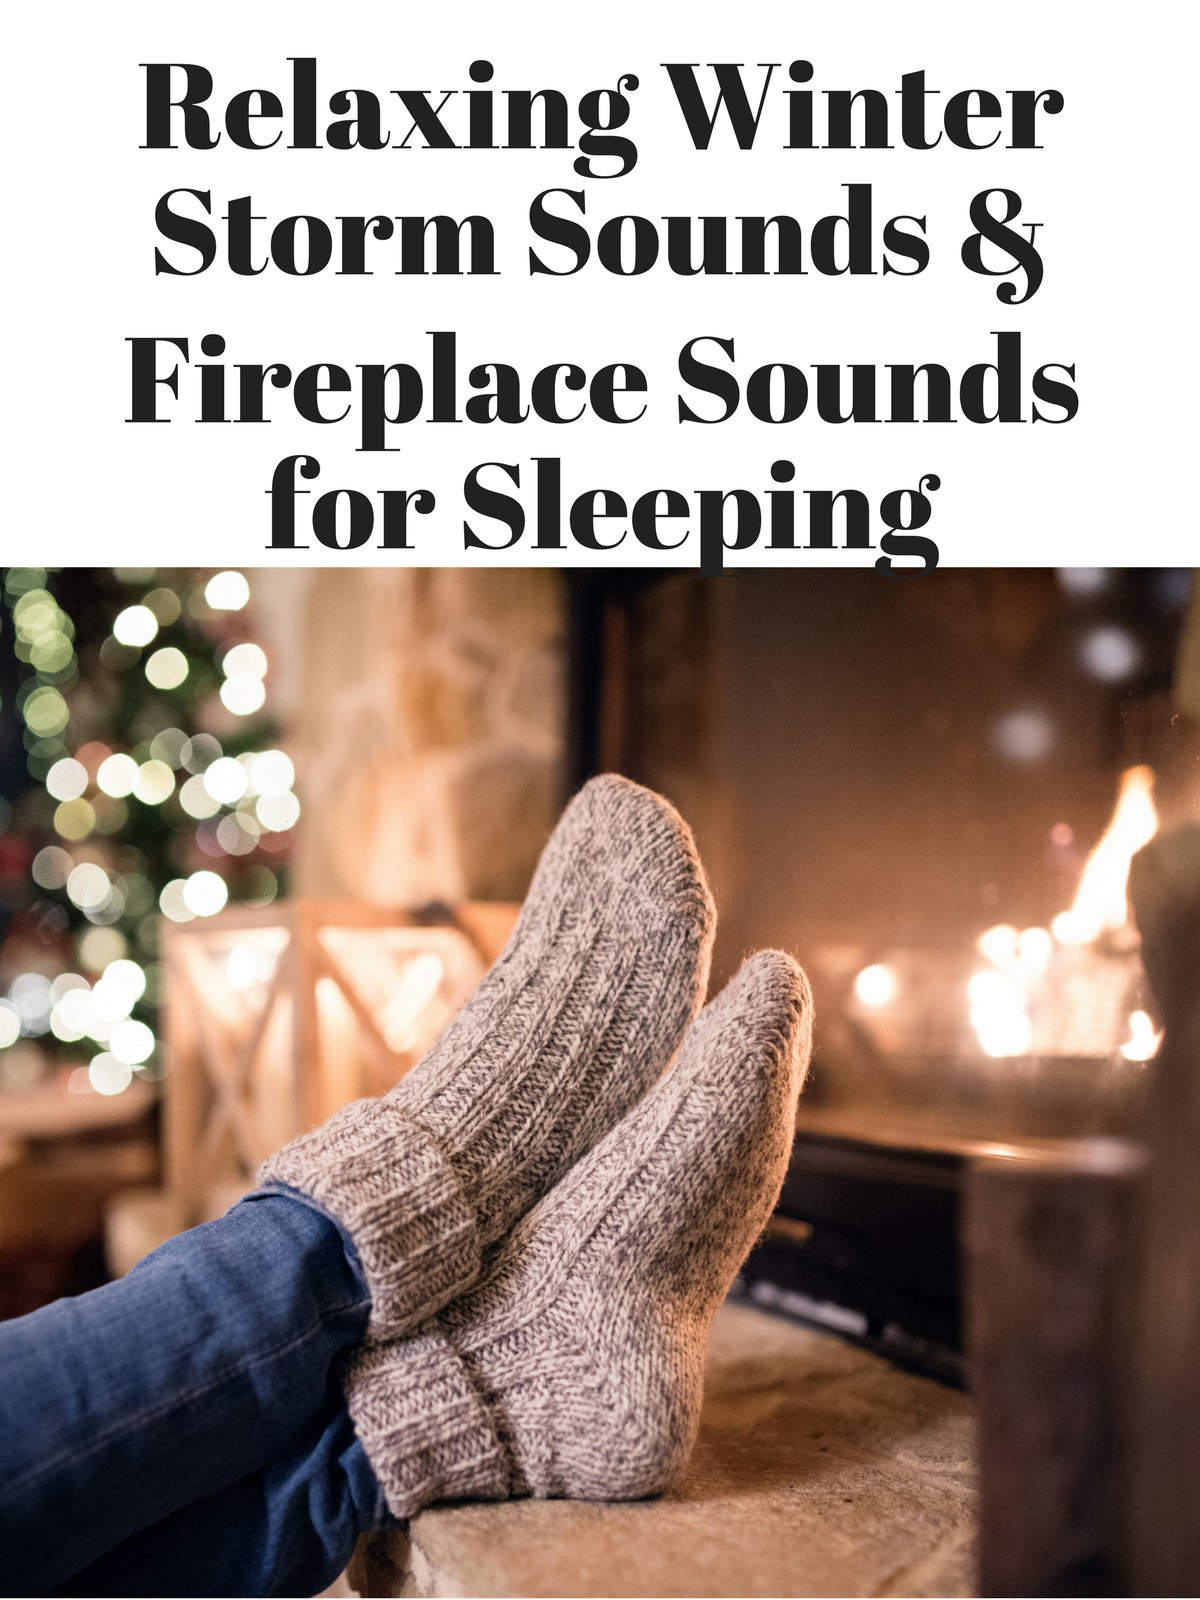 Watch 'Relaxing Winter Storm Sounds & Fireplace Sounds for Sleeping